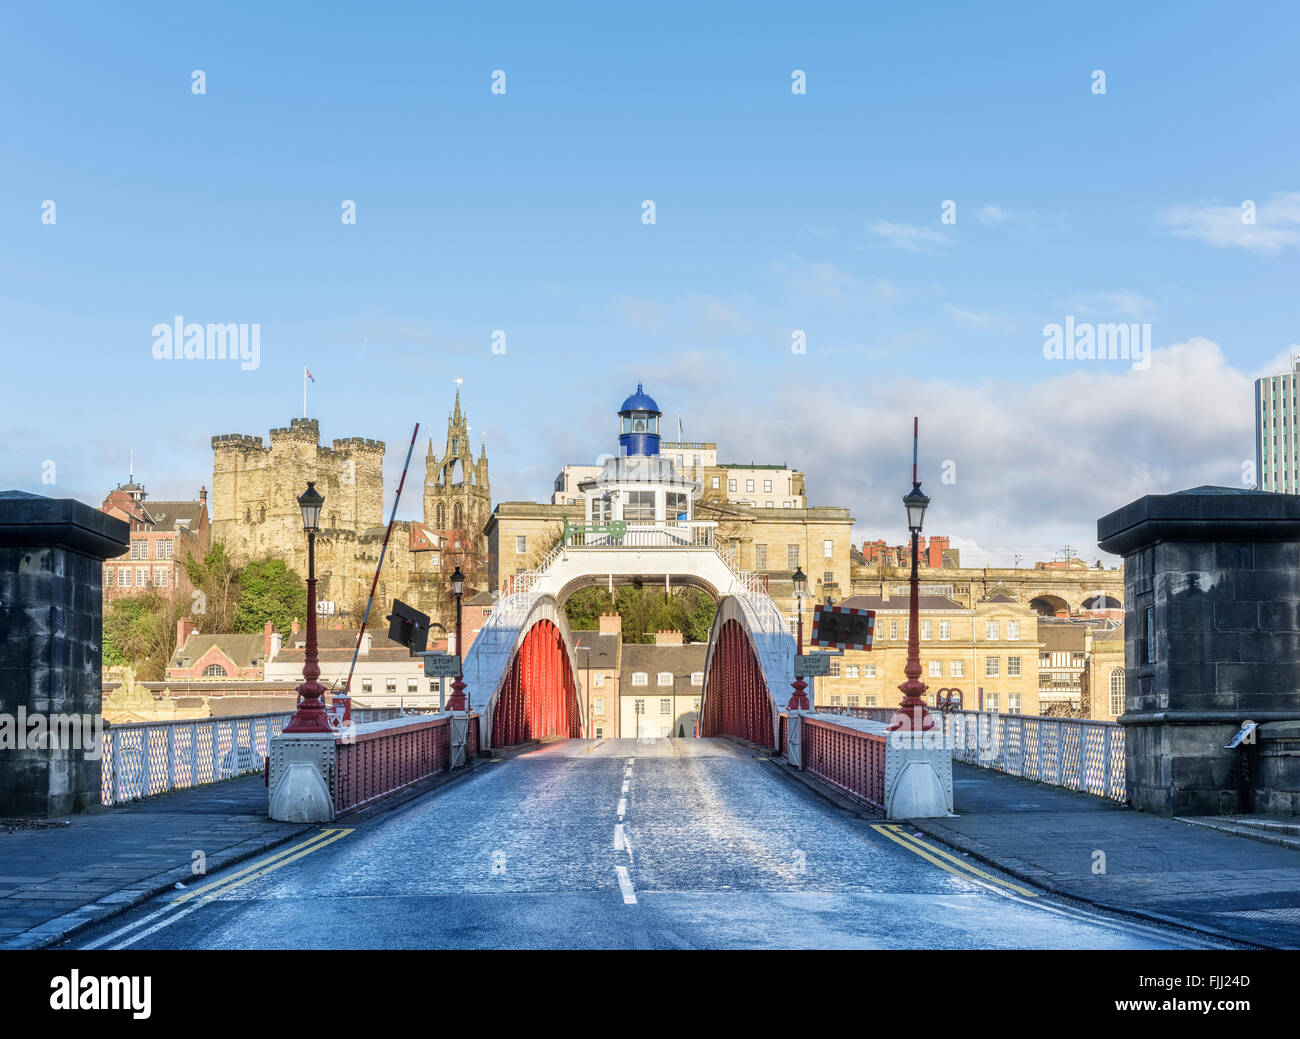 The Swing Bridge crossing the river Tyne from Gateshead to Newcastle - Stock Image